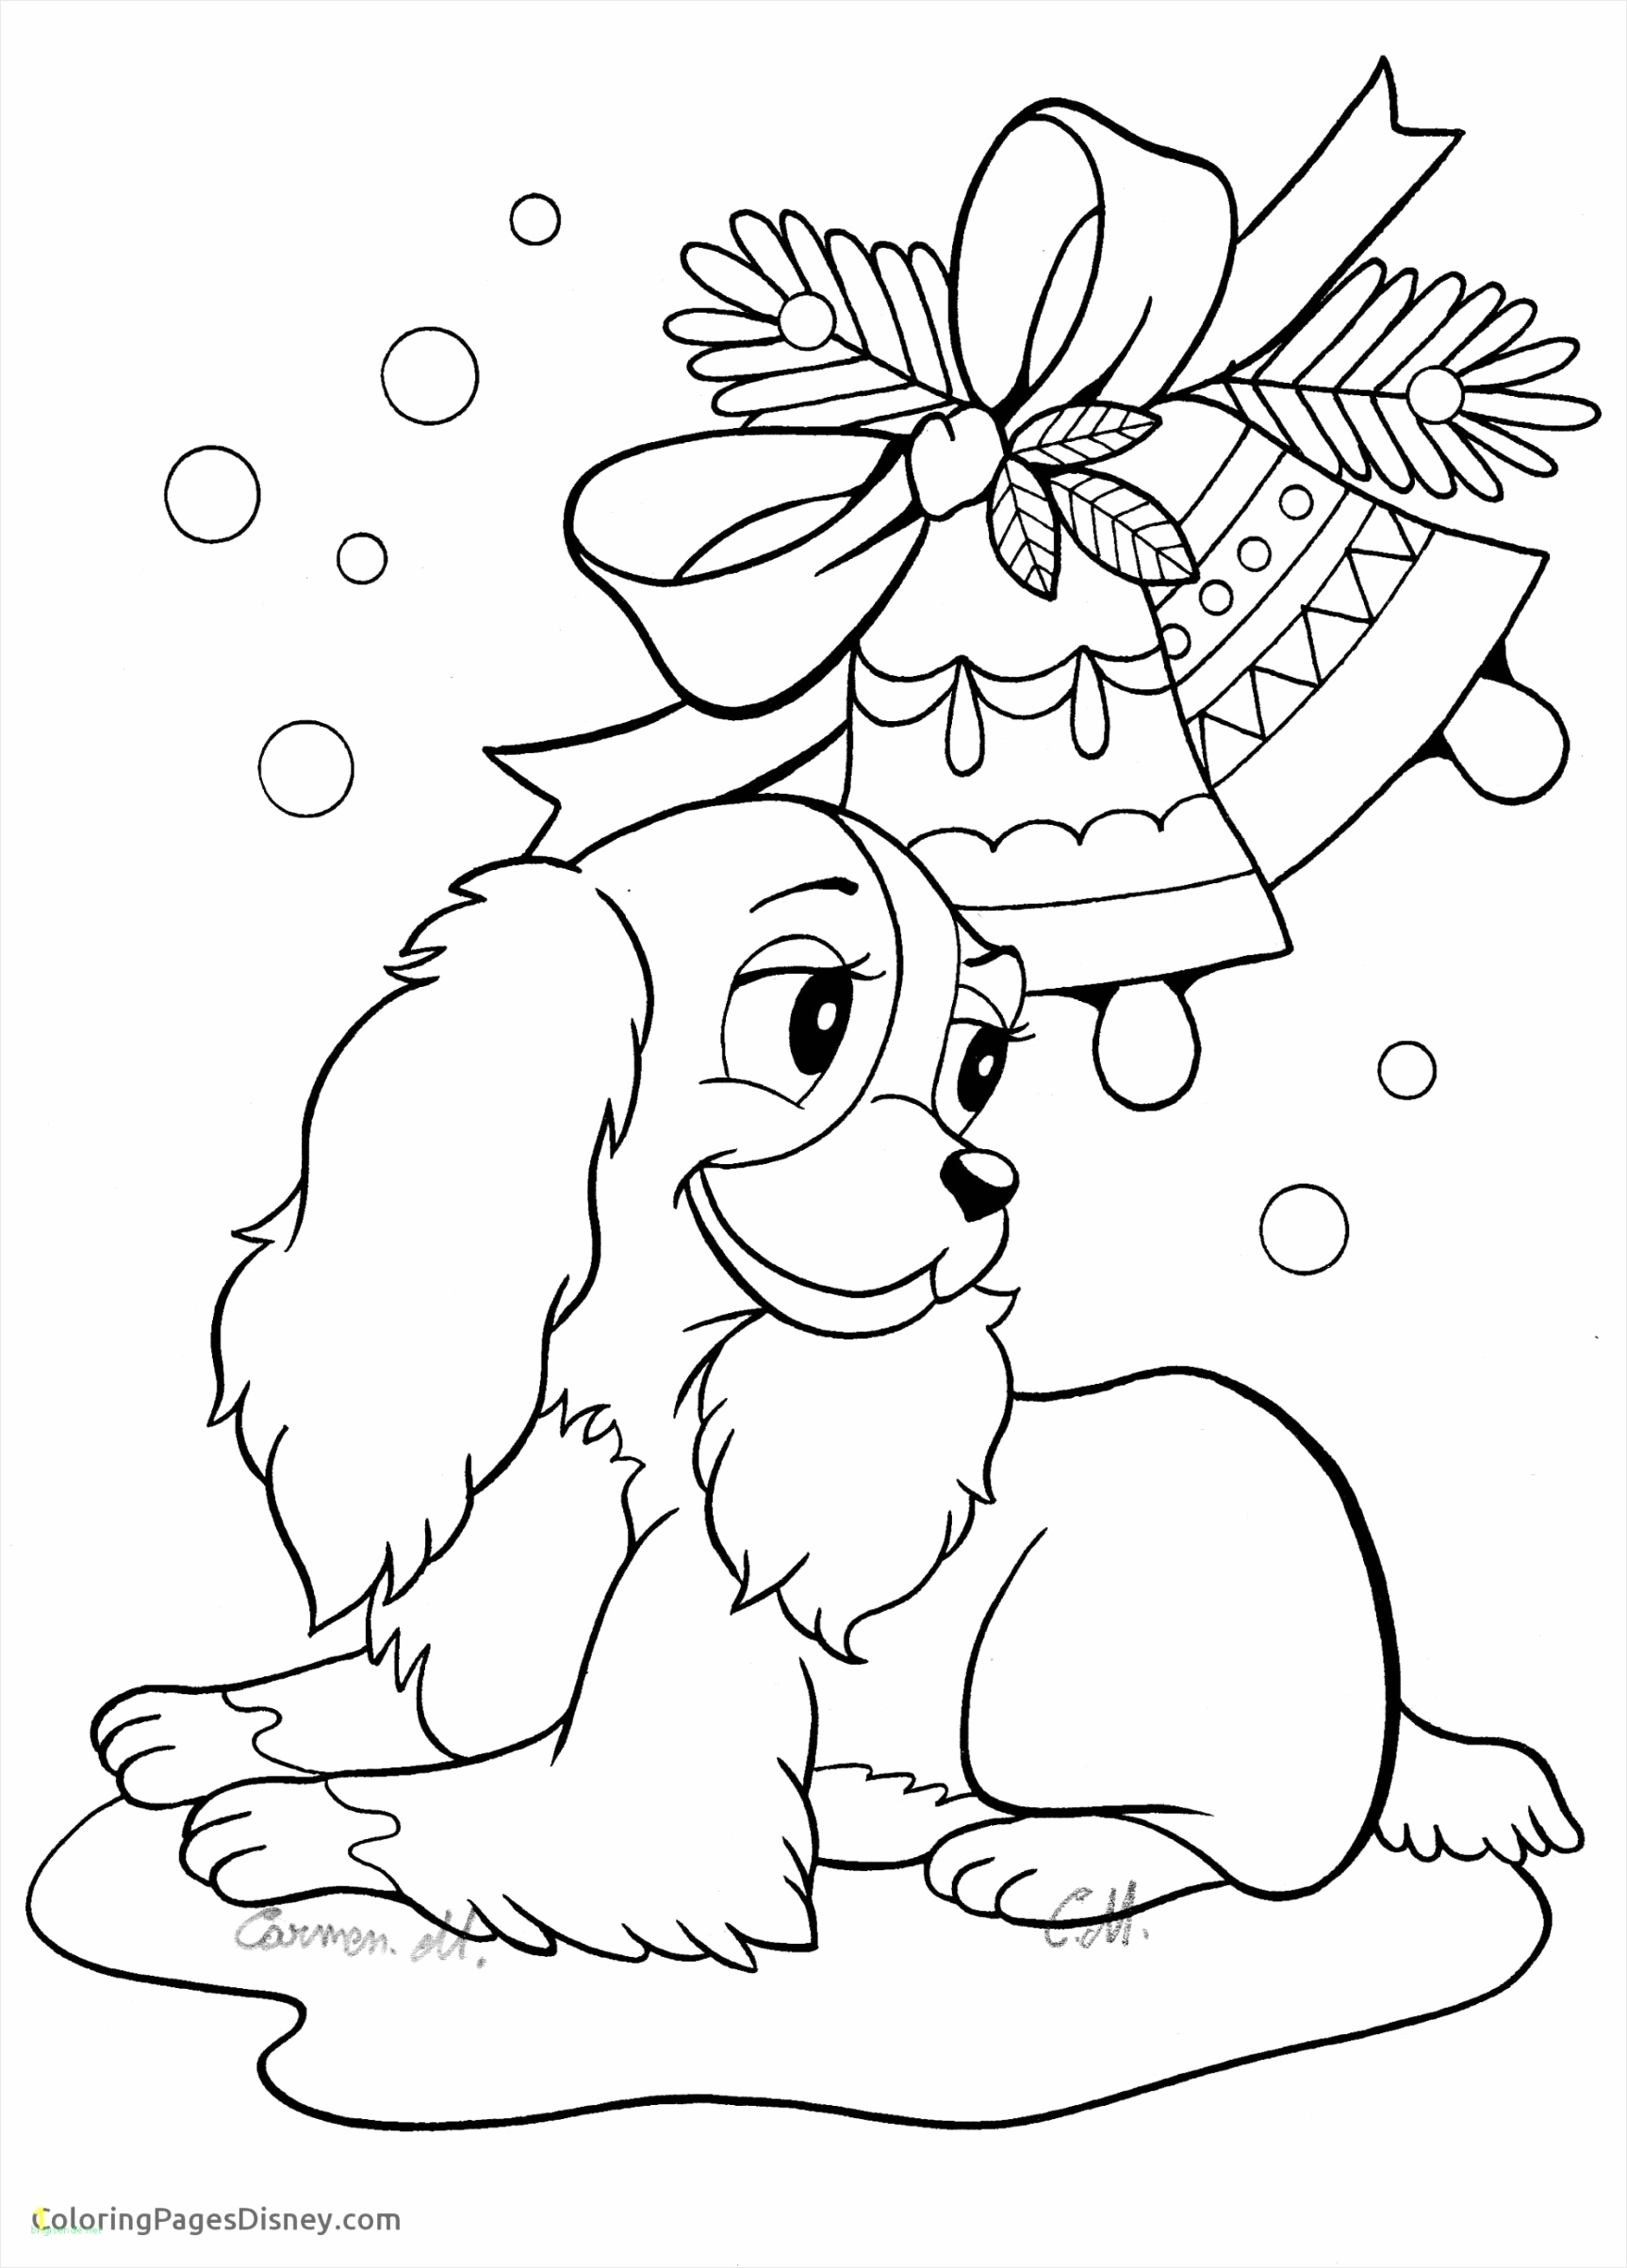 disney princess coloring book pages chelas large print sheets chip and potato printables foreen teian